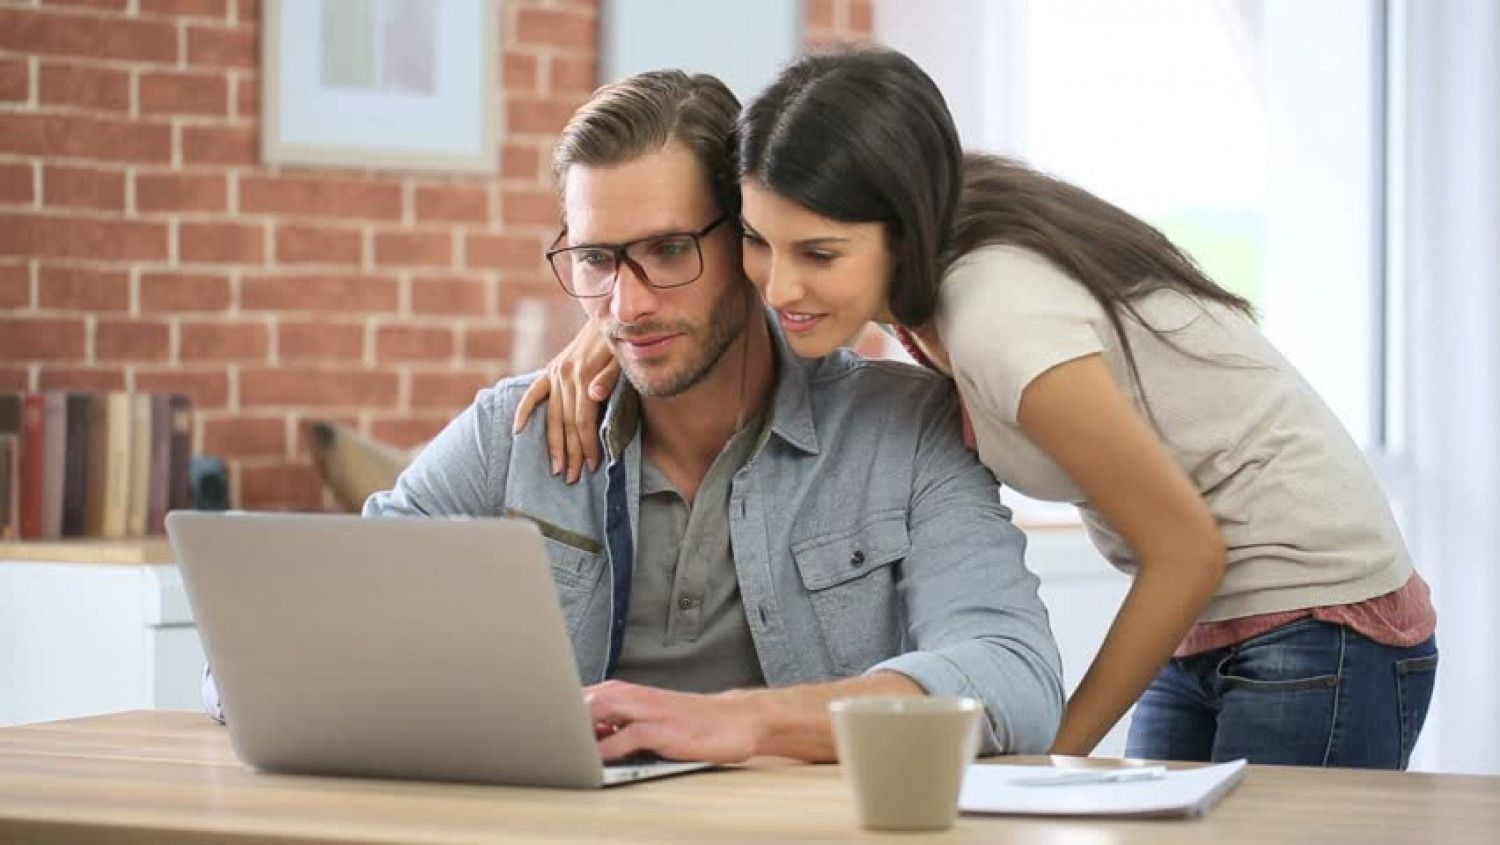 Same day loans assist in borrowing additional money in